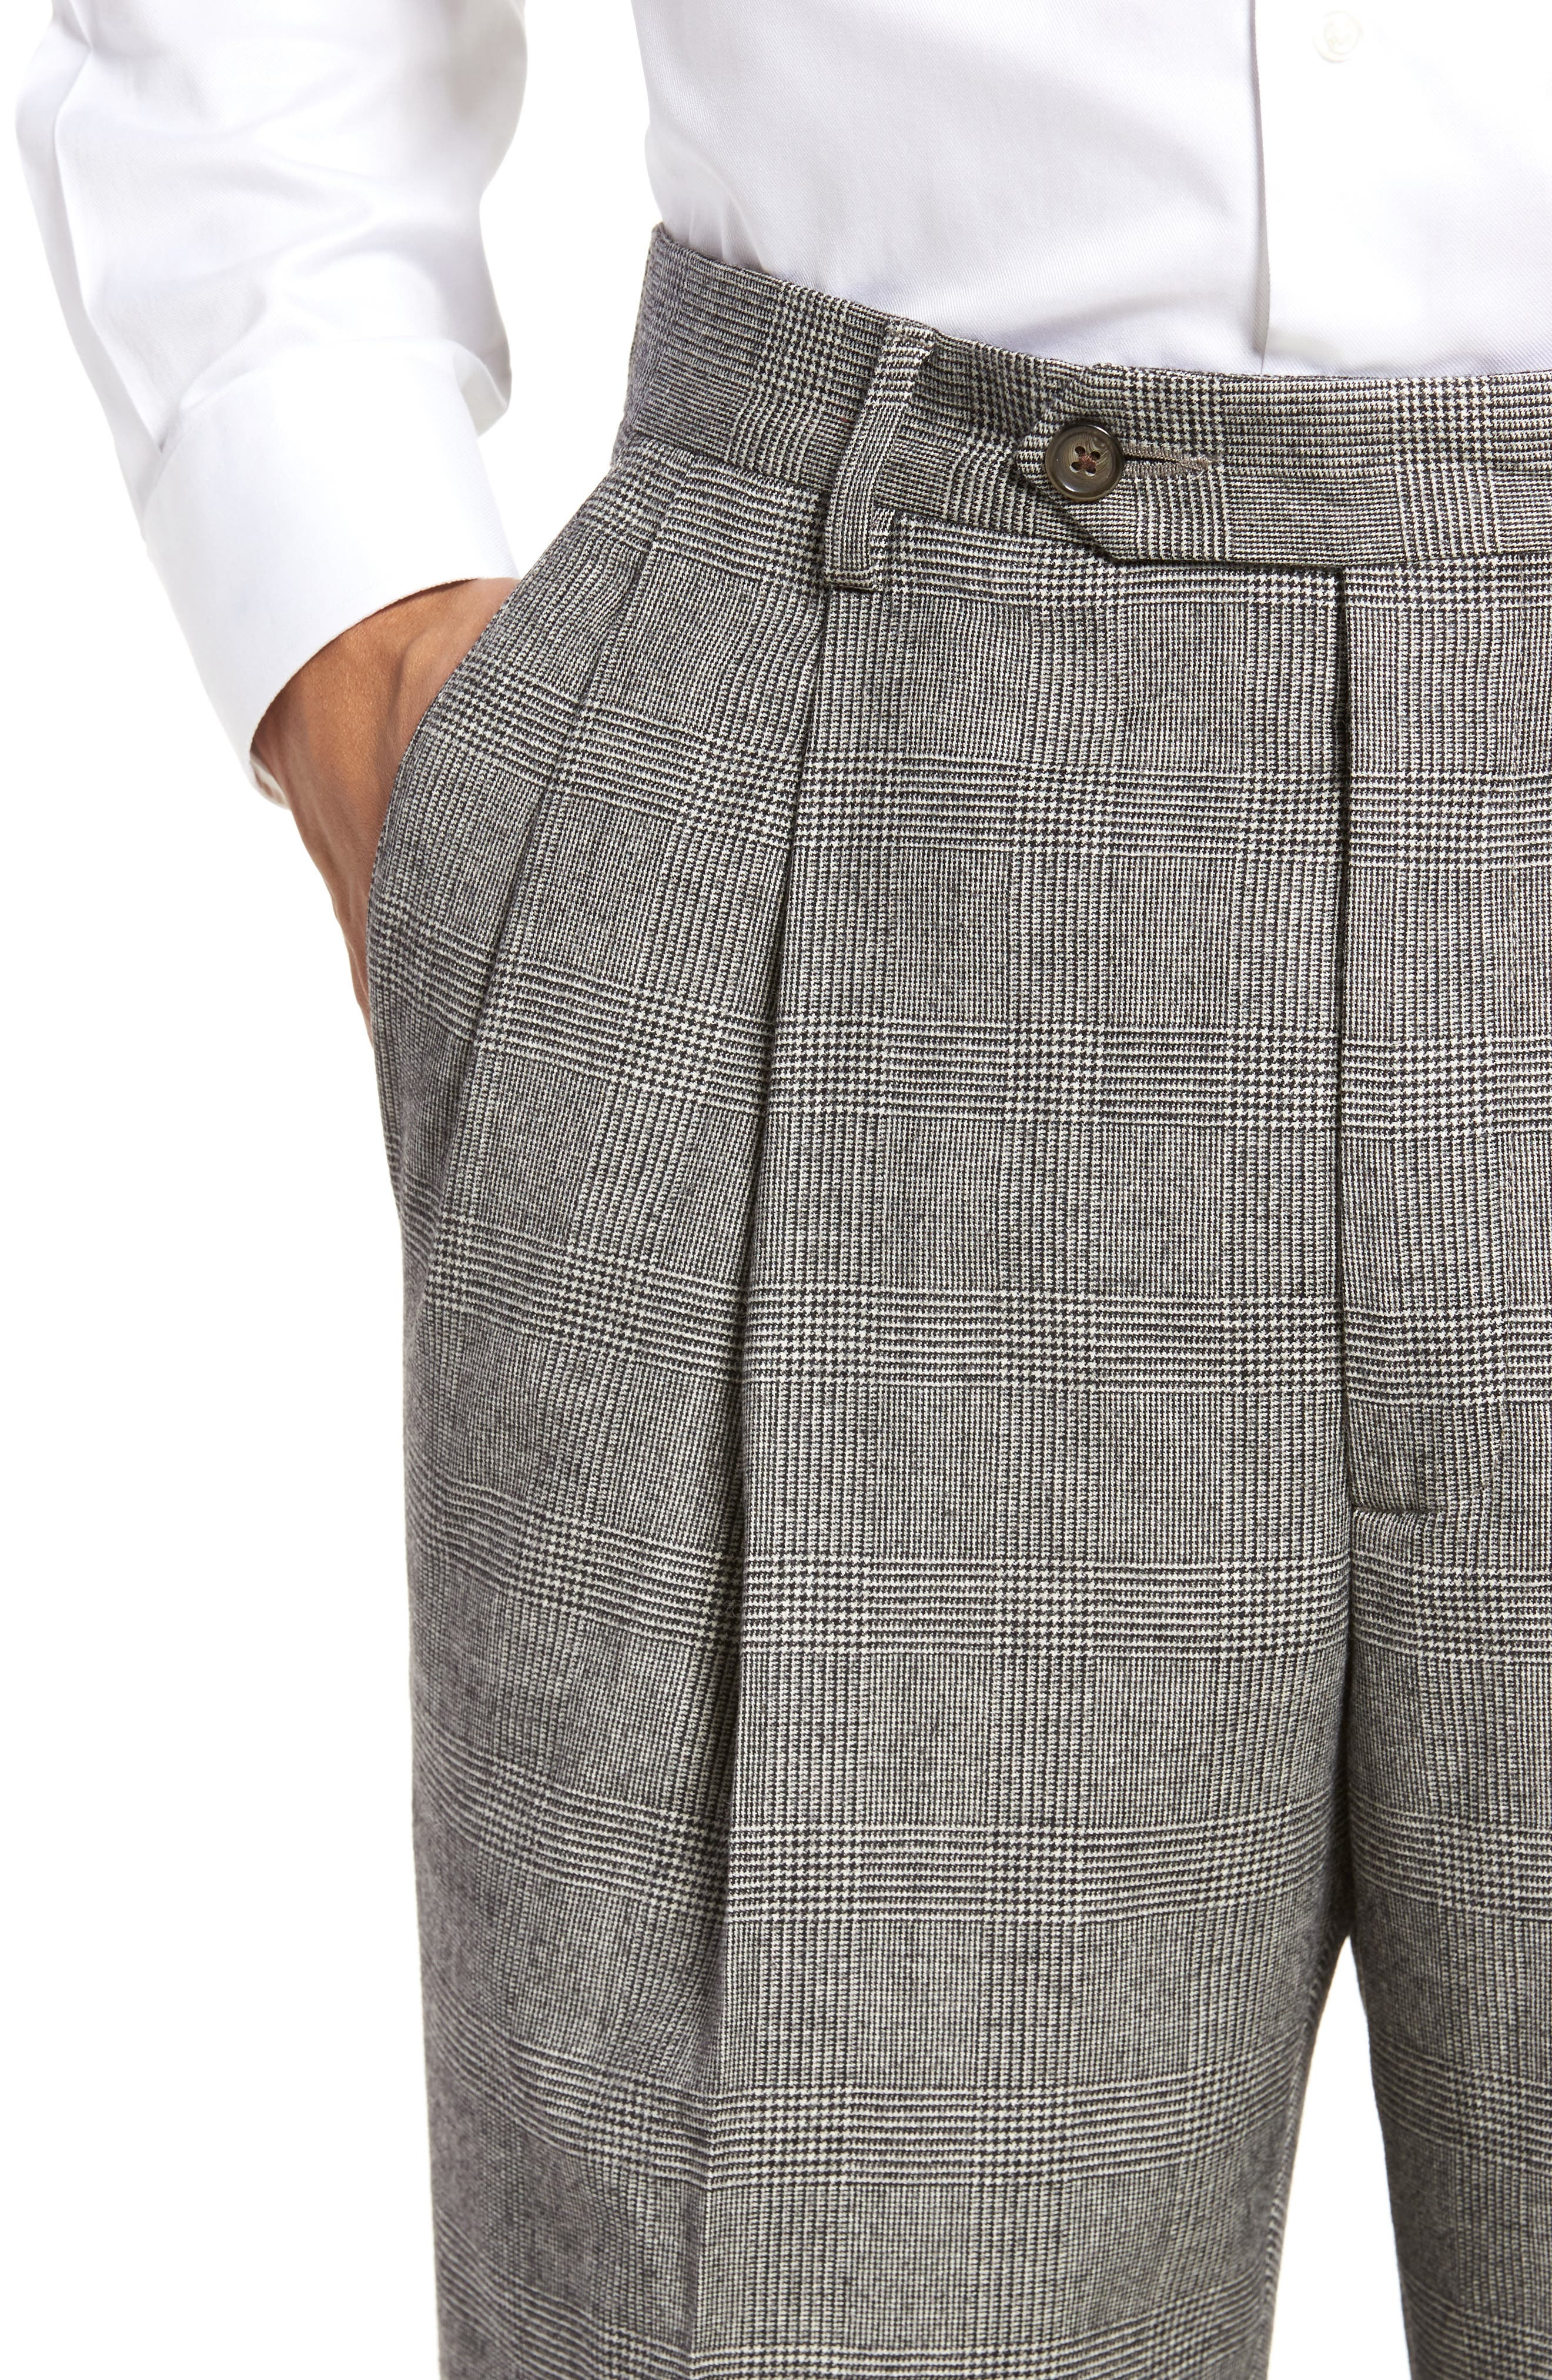 Pleated Stretch Plaid Wool Trousers,                             Alternate thumbnail 5, color,                             BLACK/ WHITE